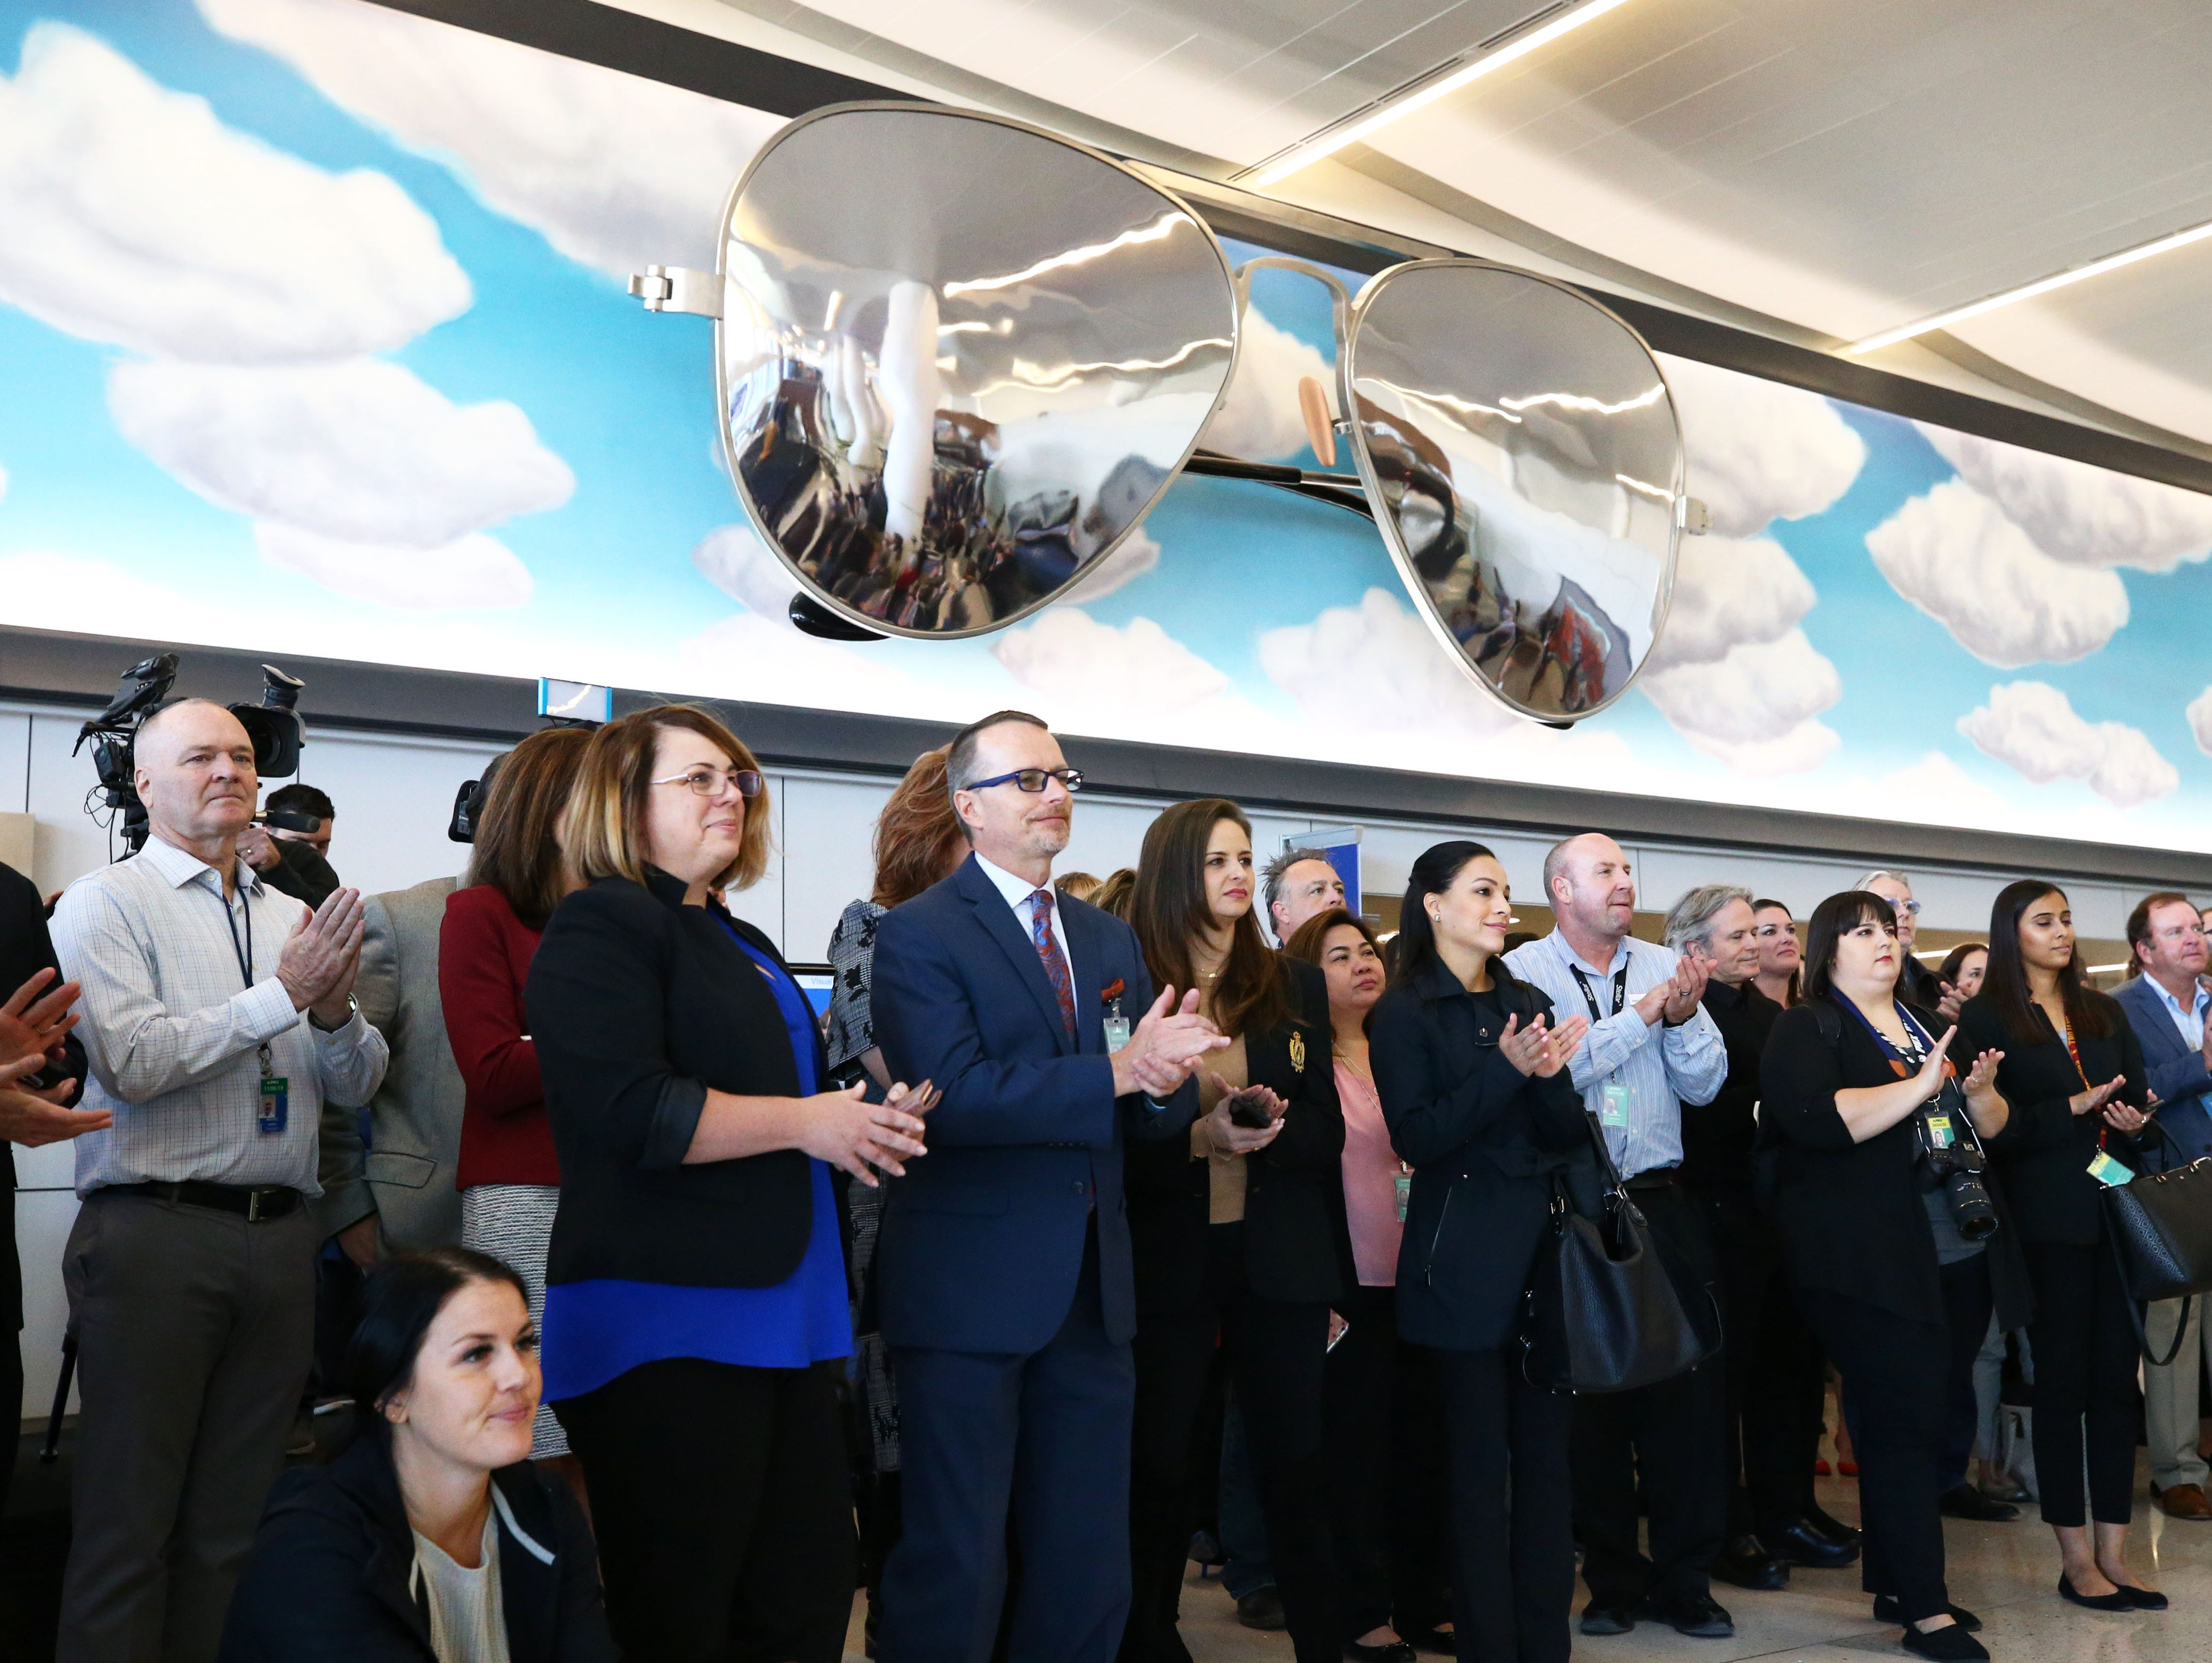 Opening ceremonies of the John S. McCain III Terminal 3, South Concourse on Monday, Jan. 7, 2019 at Phoenix Sky Harbor International Airport.